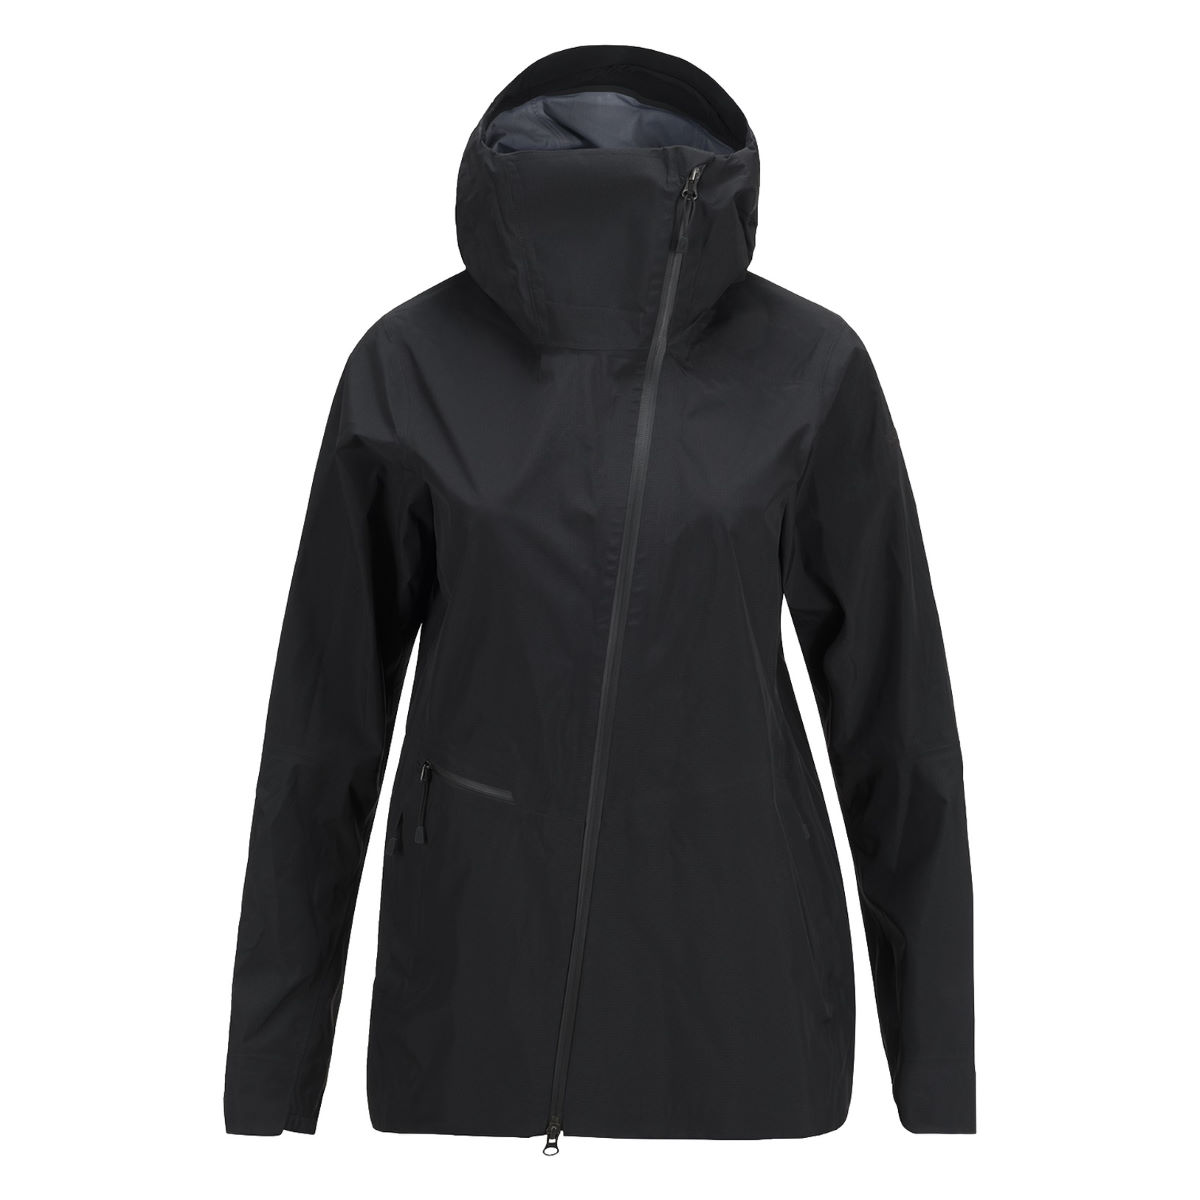 Veste Femme Peak Performance Civil Active - L Noir Vestes